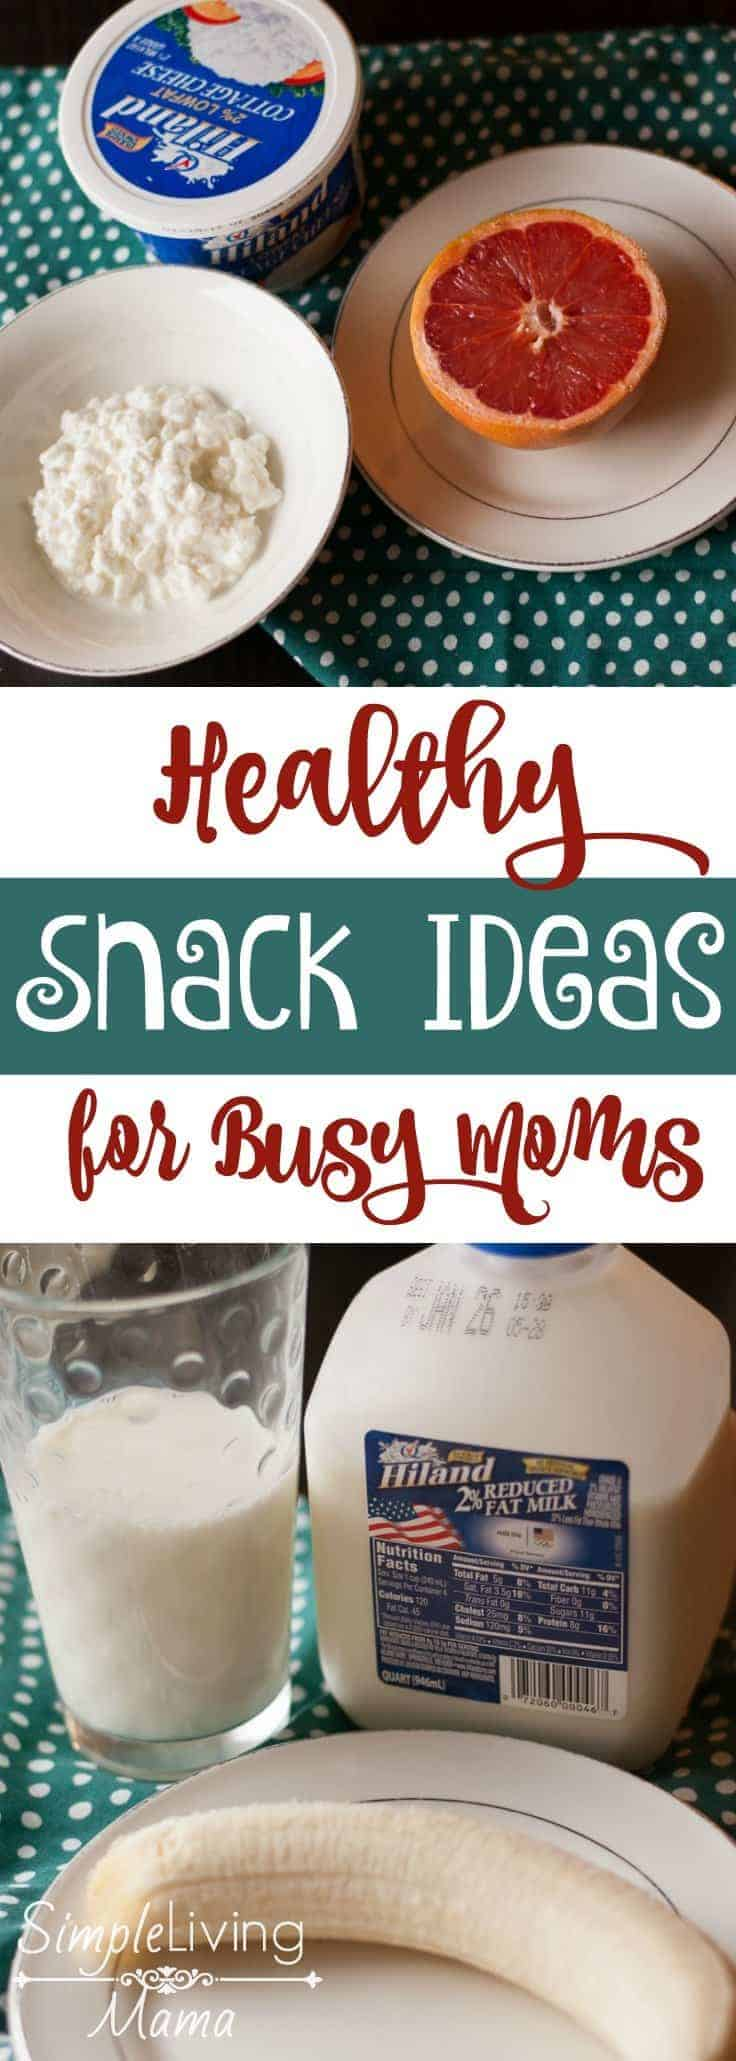 Healthy snack ideas for busy moms